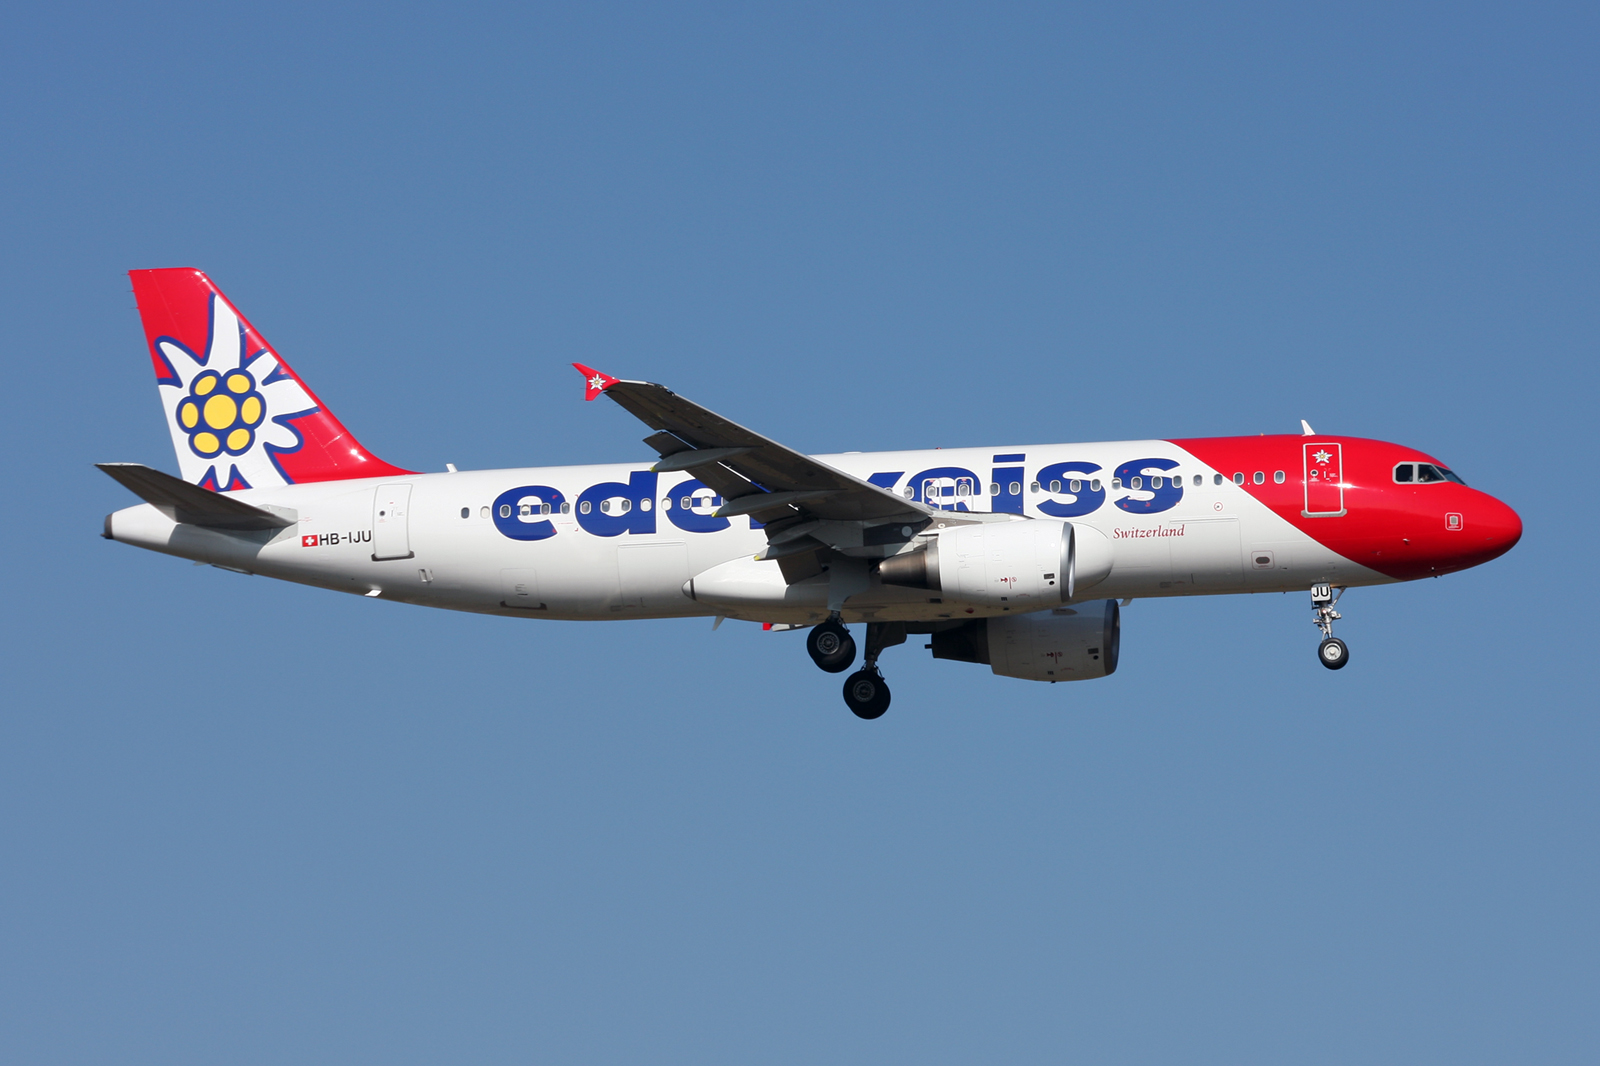 Punctual European Airlines in 2021 - edelweiss Air